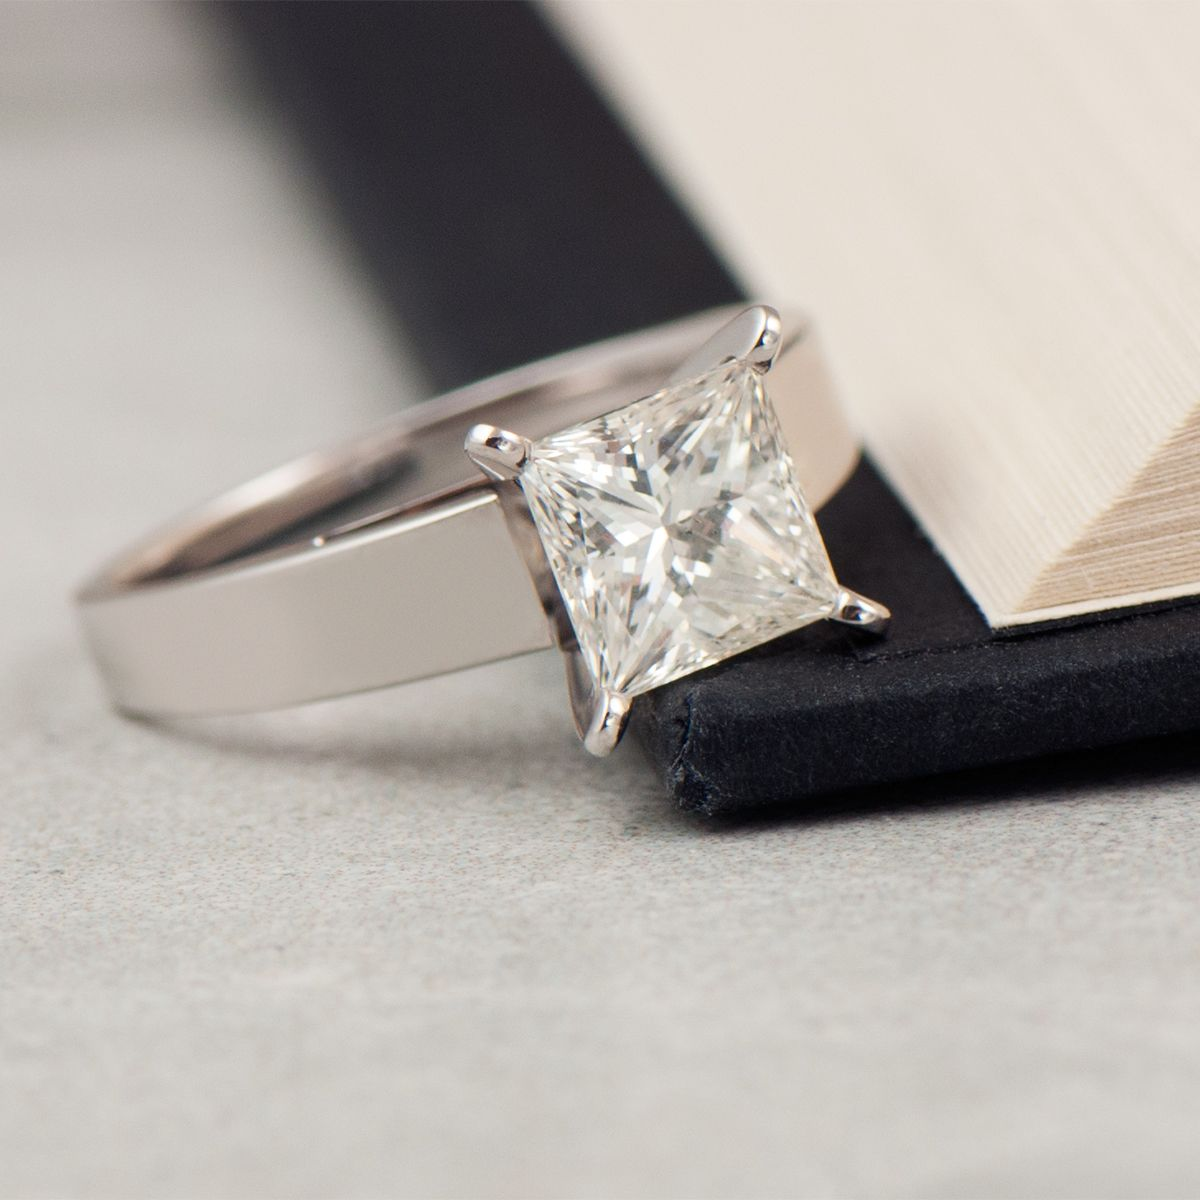 A classic symbol of your love story. solitaire